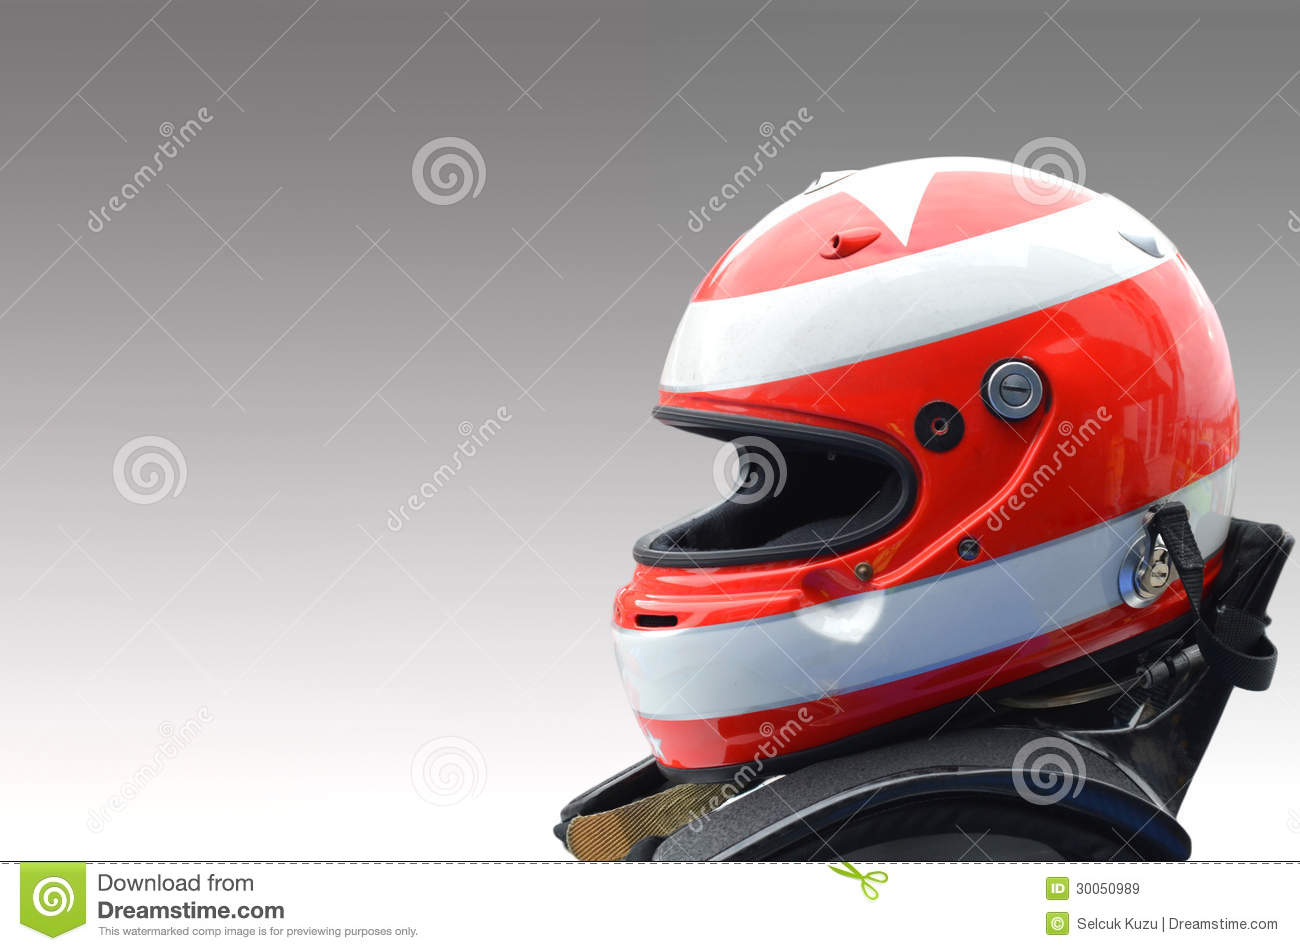 Car Racing Helmet Royalty Free Stock Images - Image: 30050989